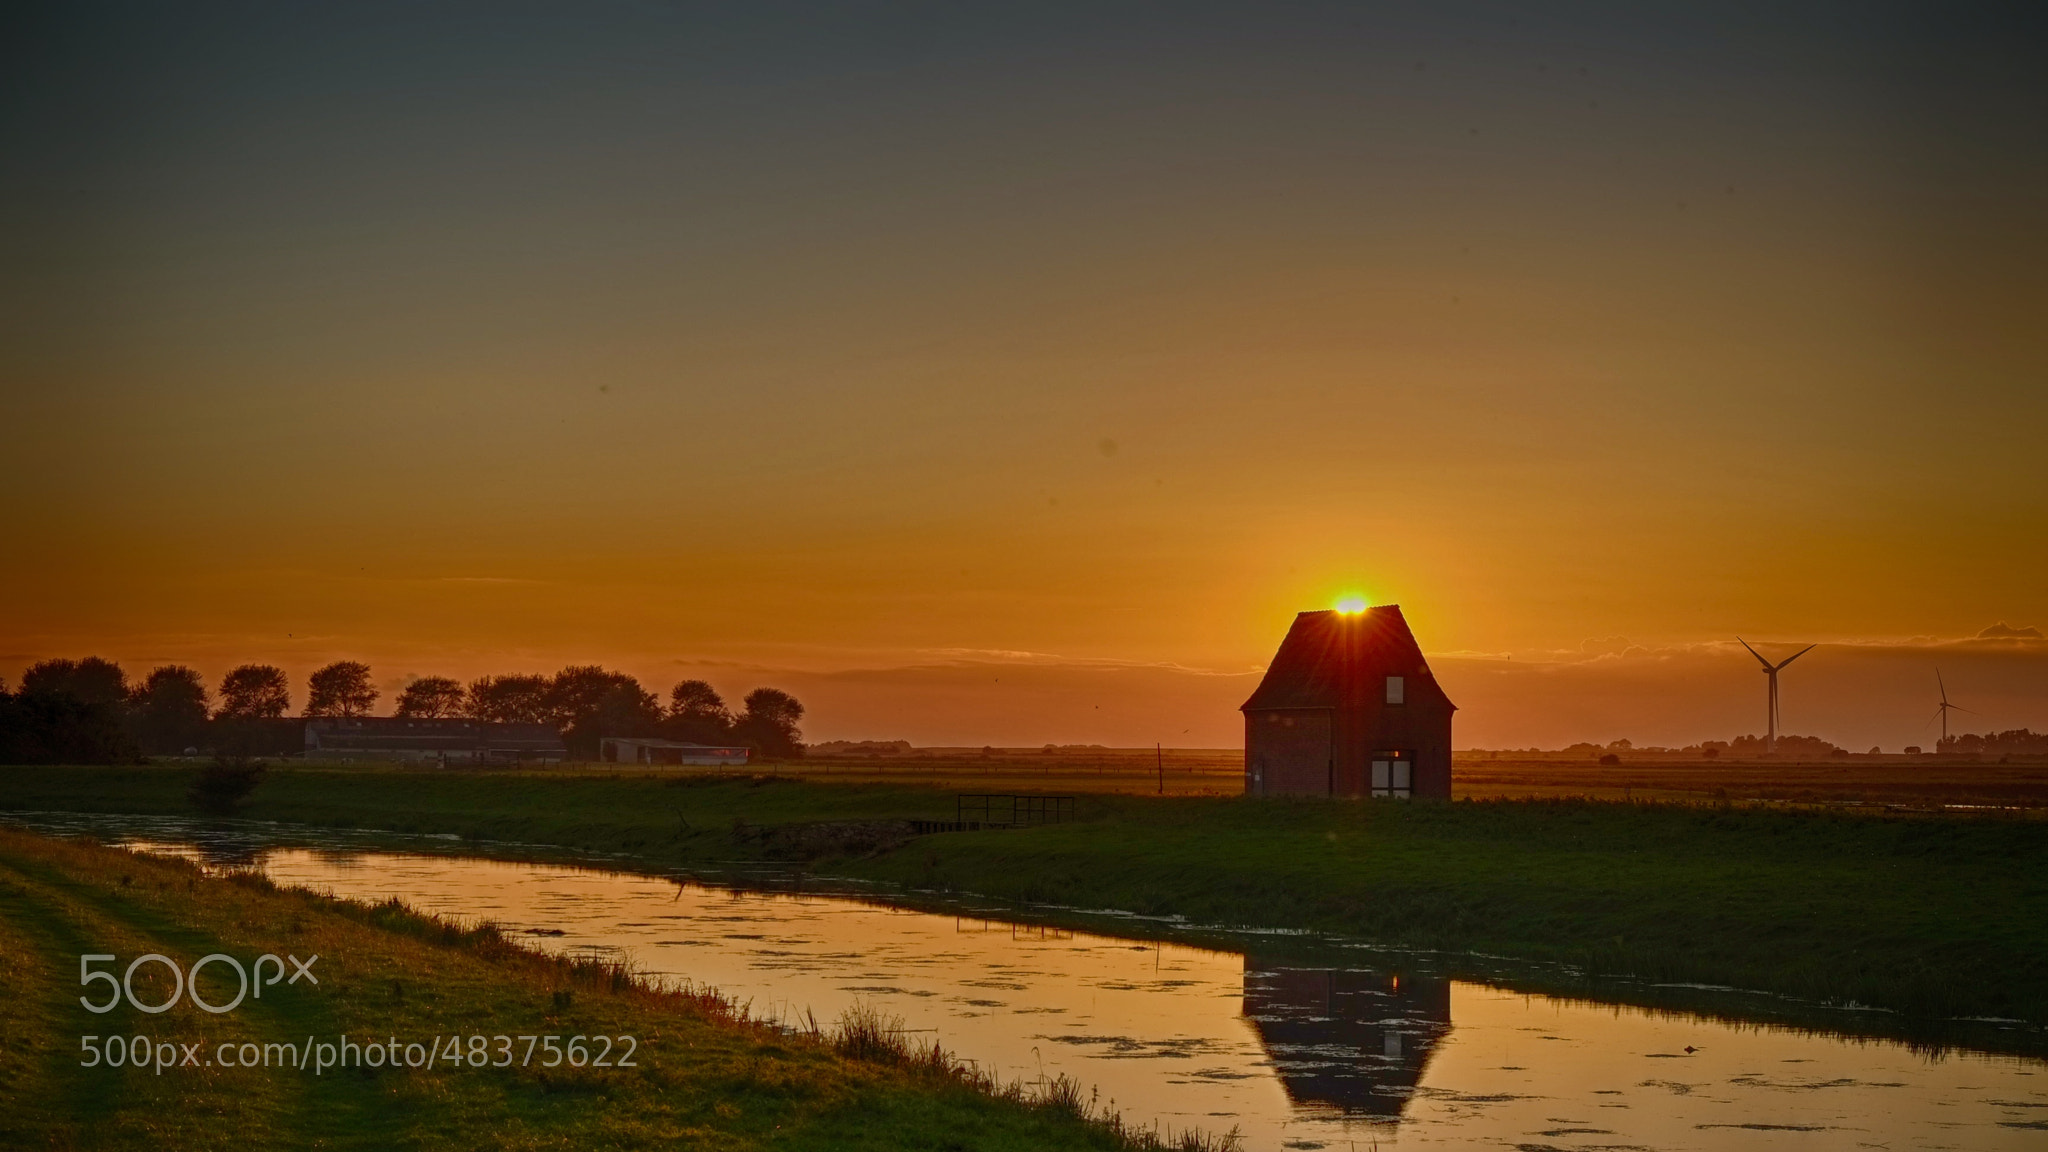 Photograph Sunset by world_image on 500px